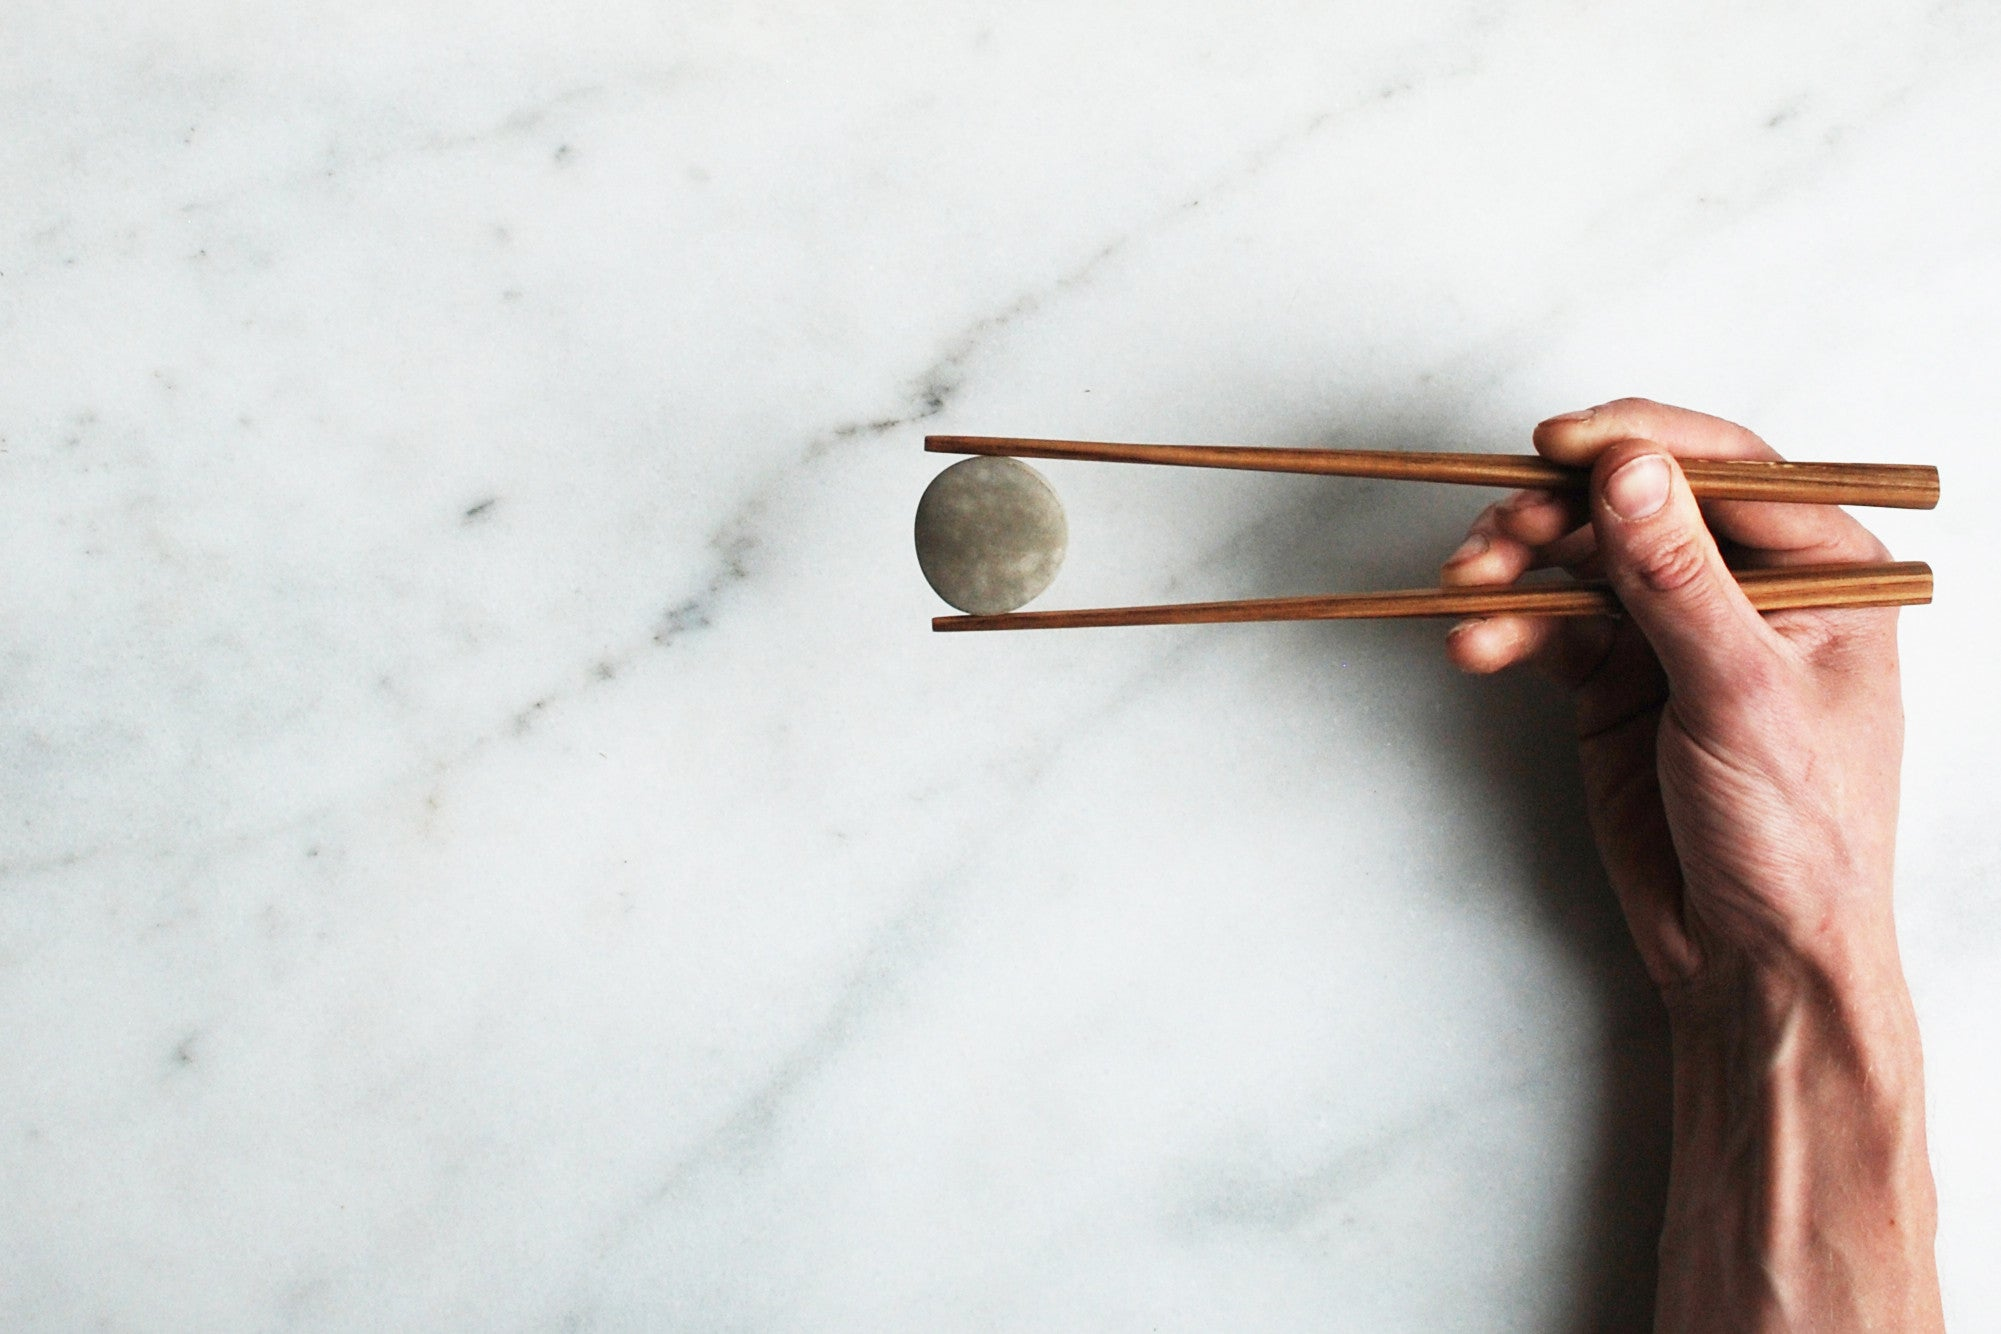 Wooden Chopsticks and Concrete Hypar Rest